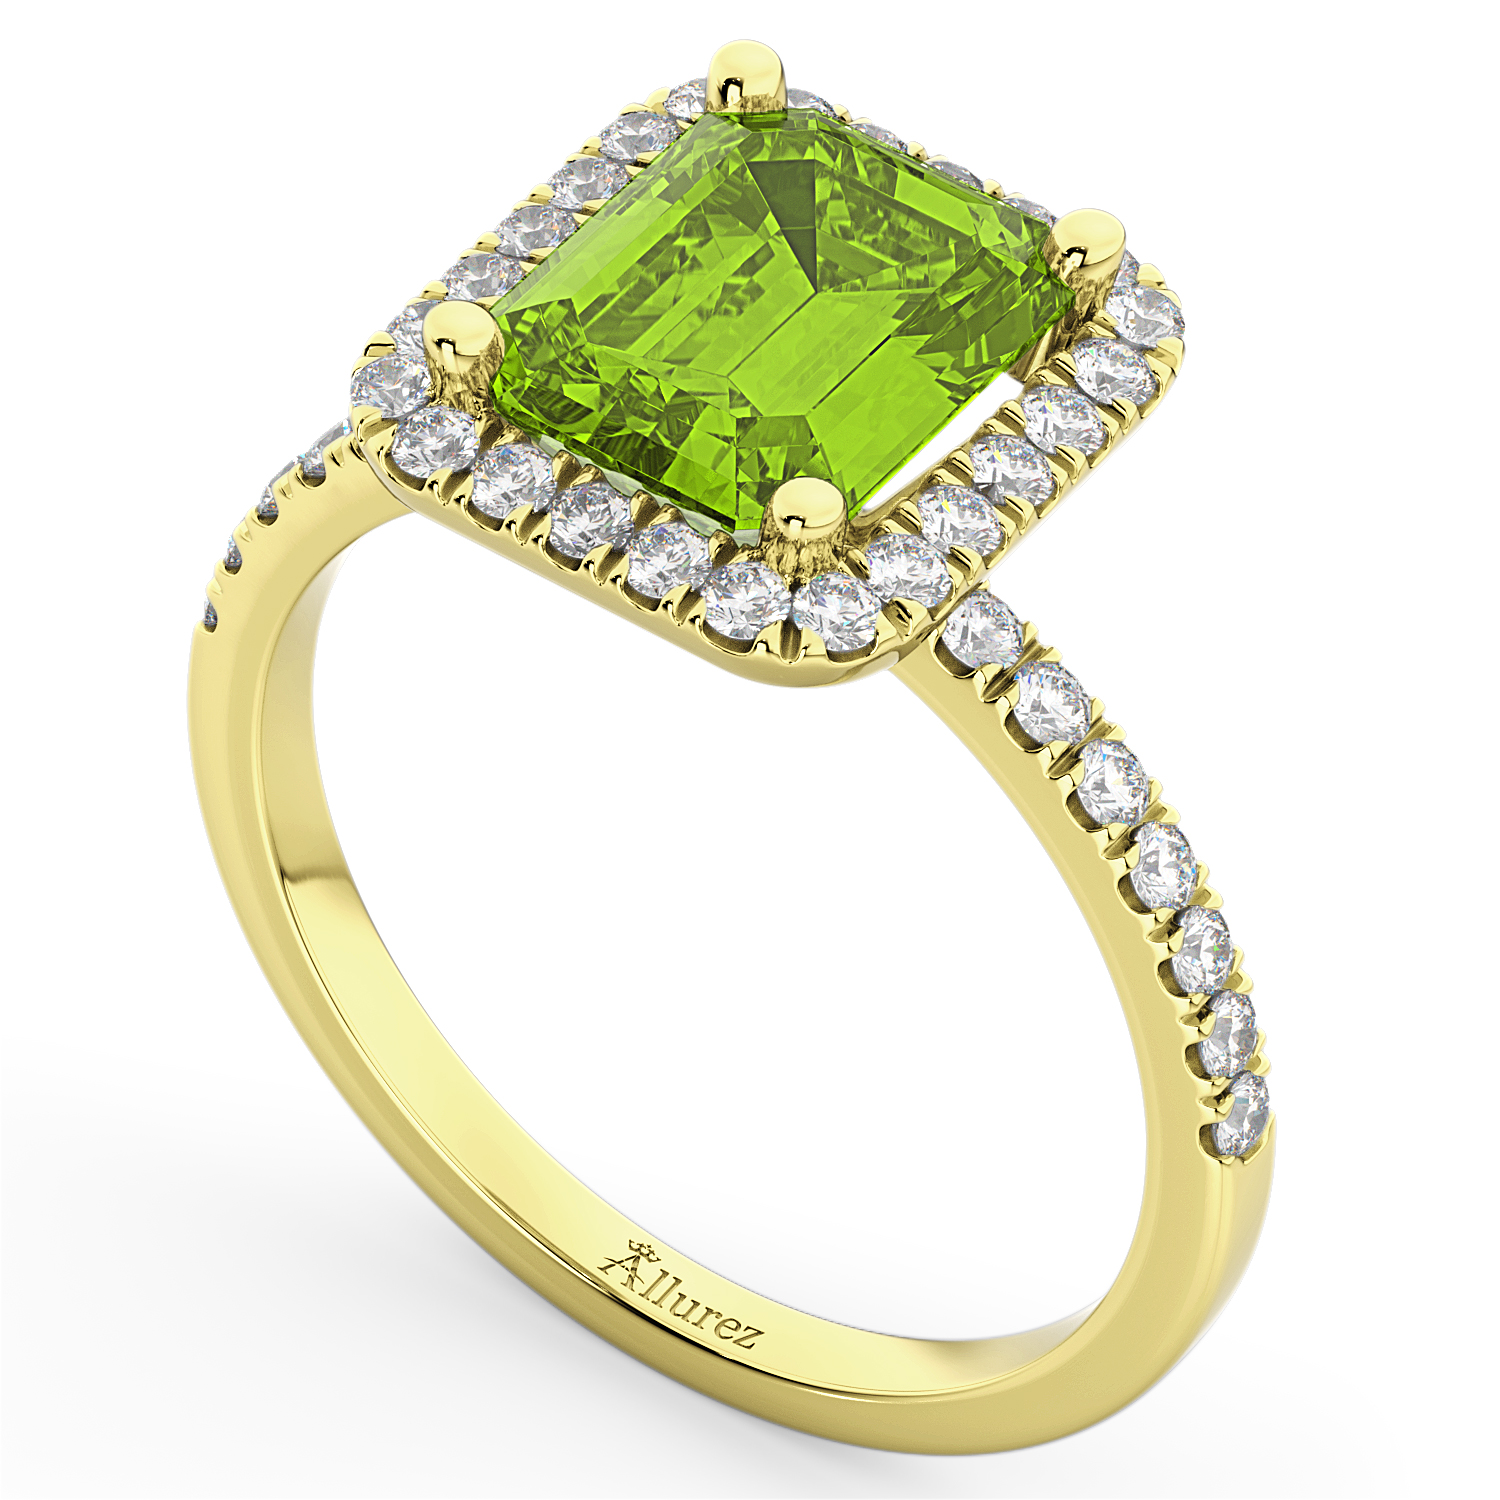 Emerald Cut Peridot Diamond Engagement Ring 18k Yellow Gold 3 32ct